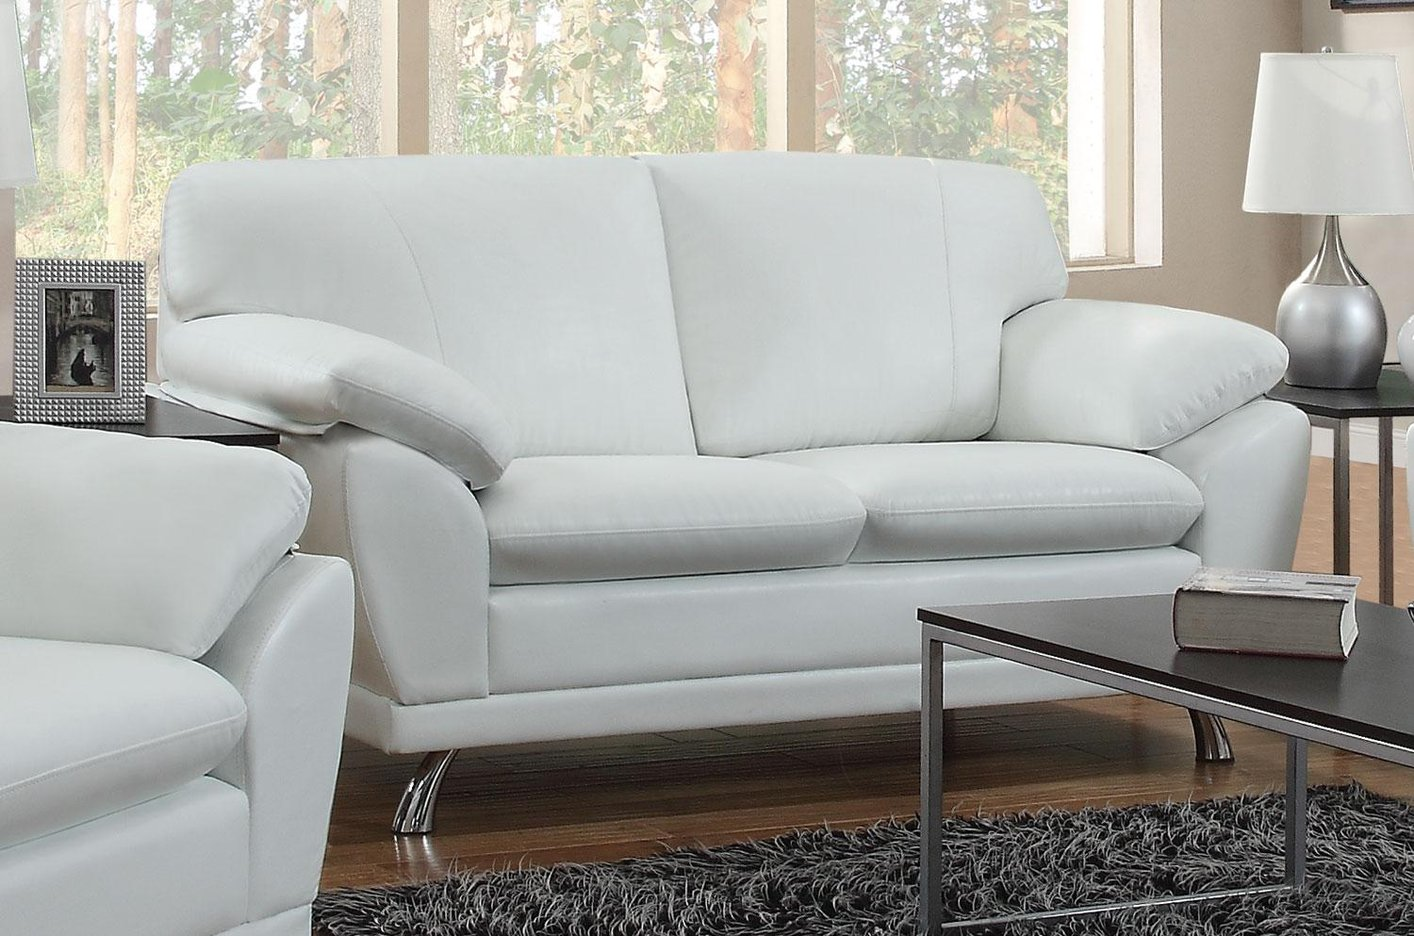 Coaster Robyn 504542 White Leather Loveseat Steal A Sofa